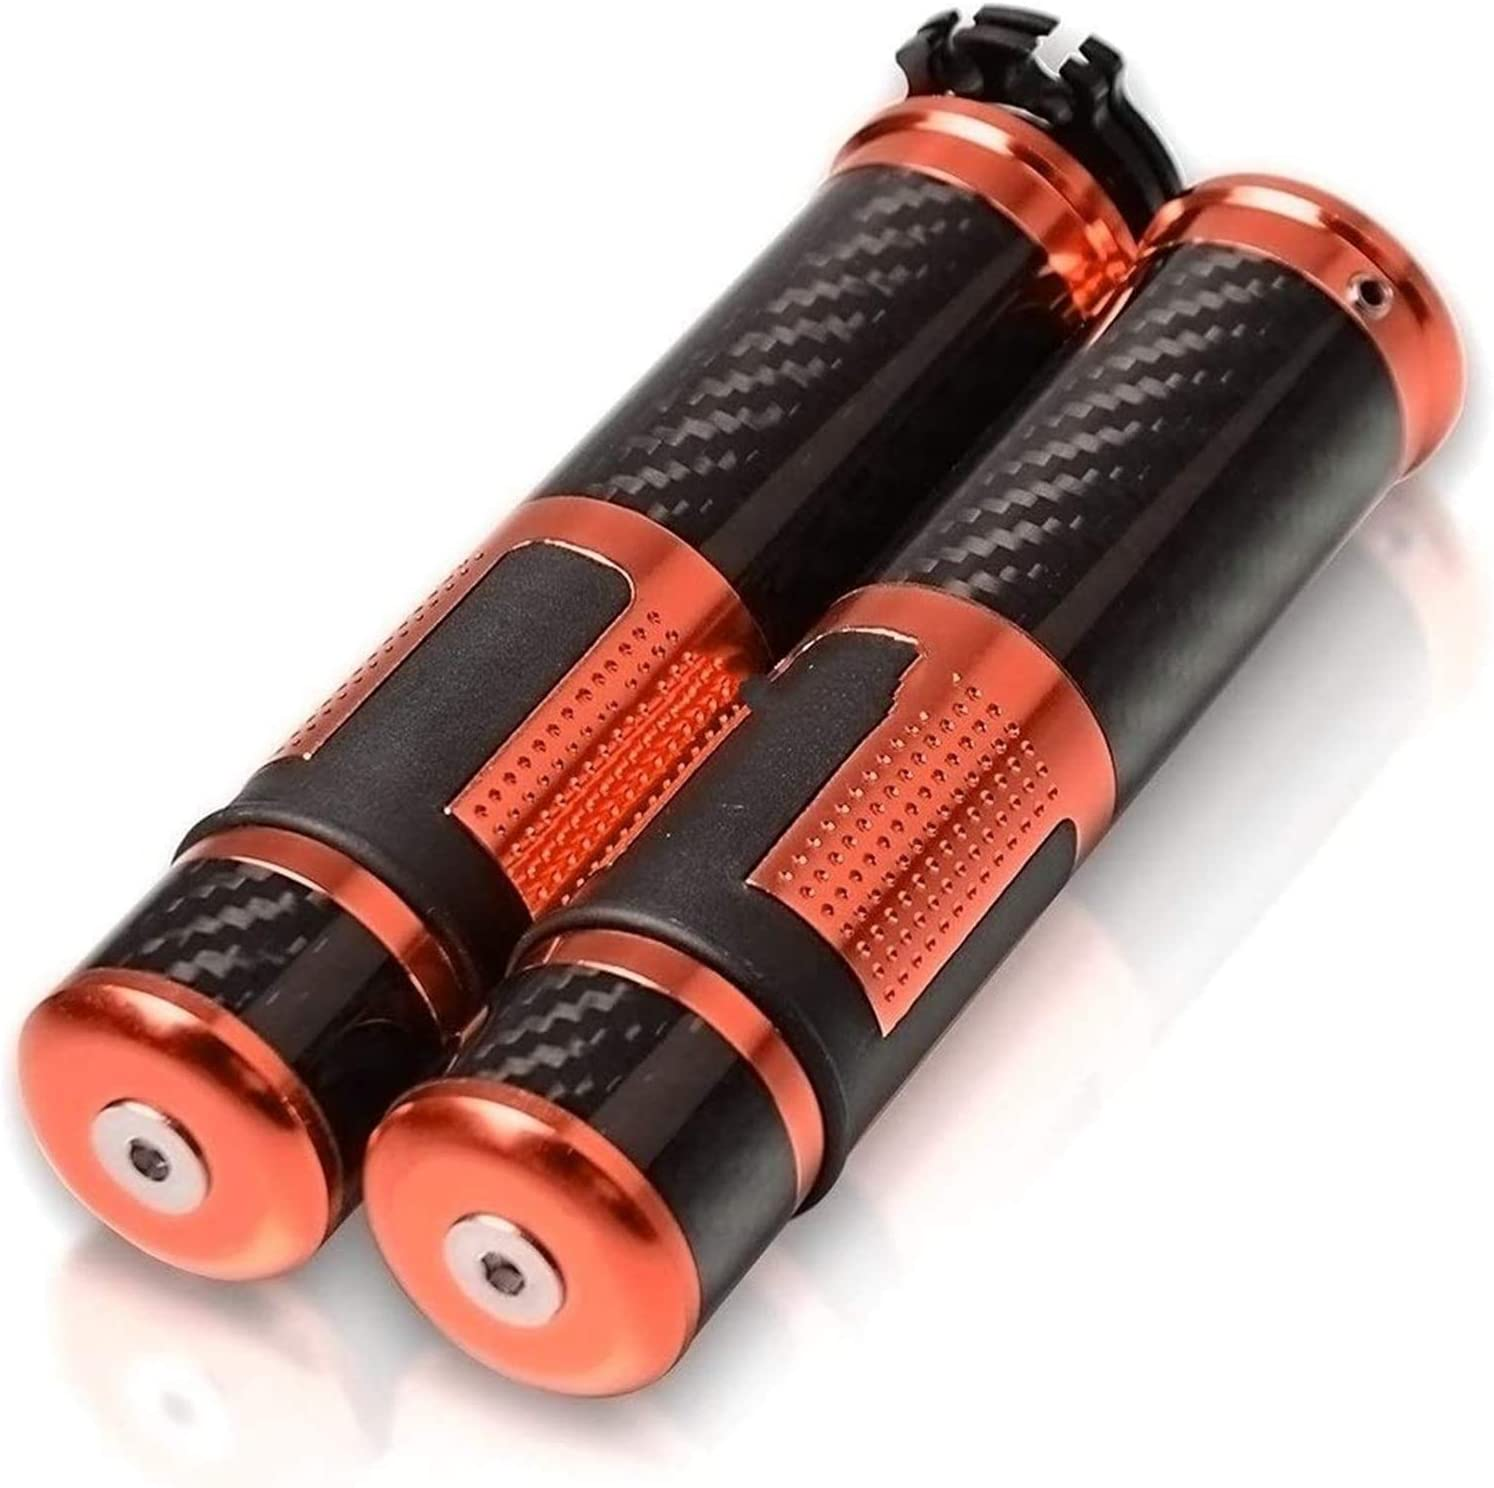 PPJY Motorcycle Hand Grips for Fashion Max 43% OFF BMW S1000XR S1000RR HP4 R1 S1000R